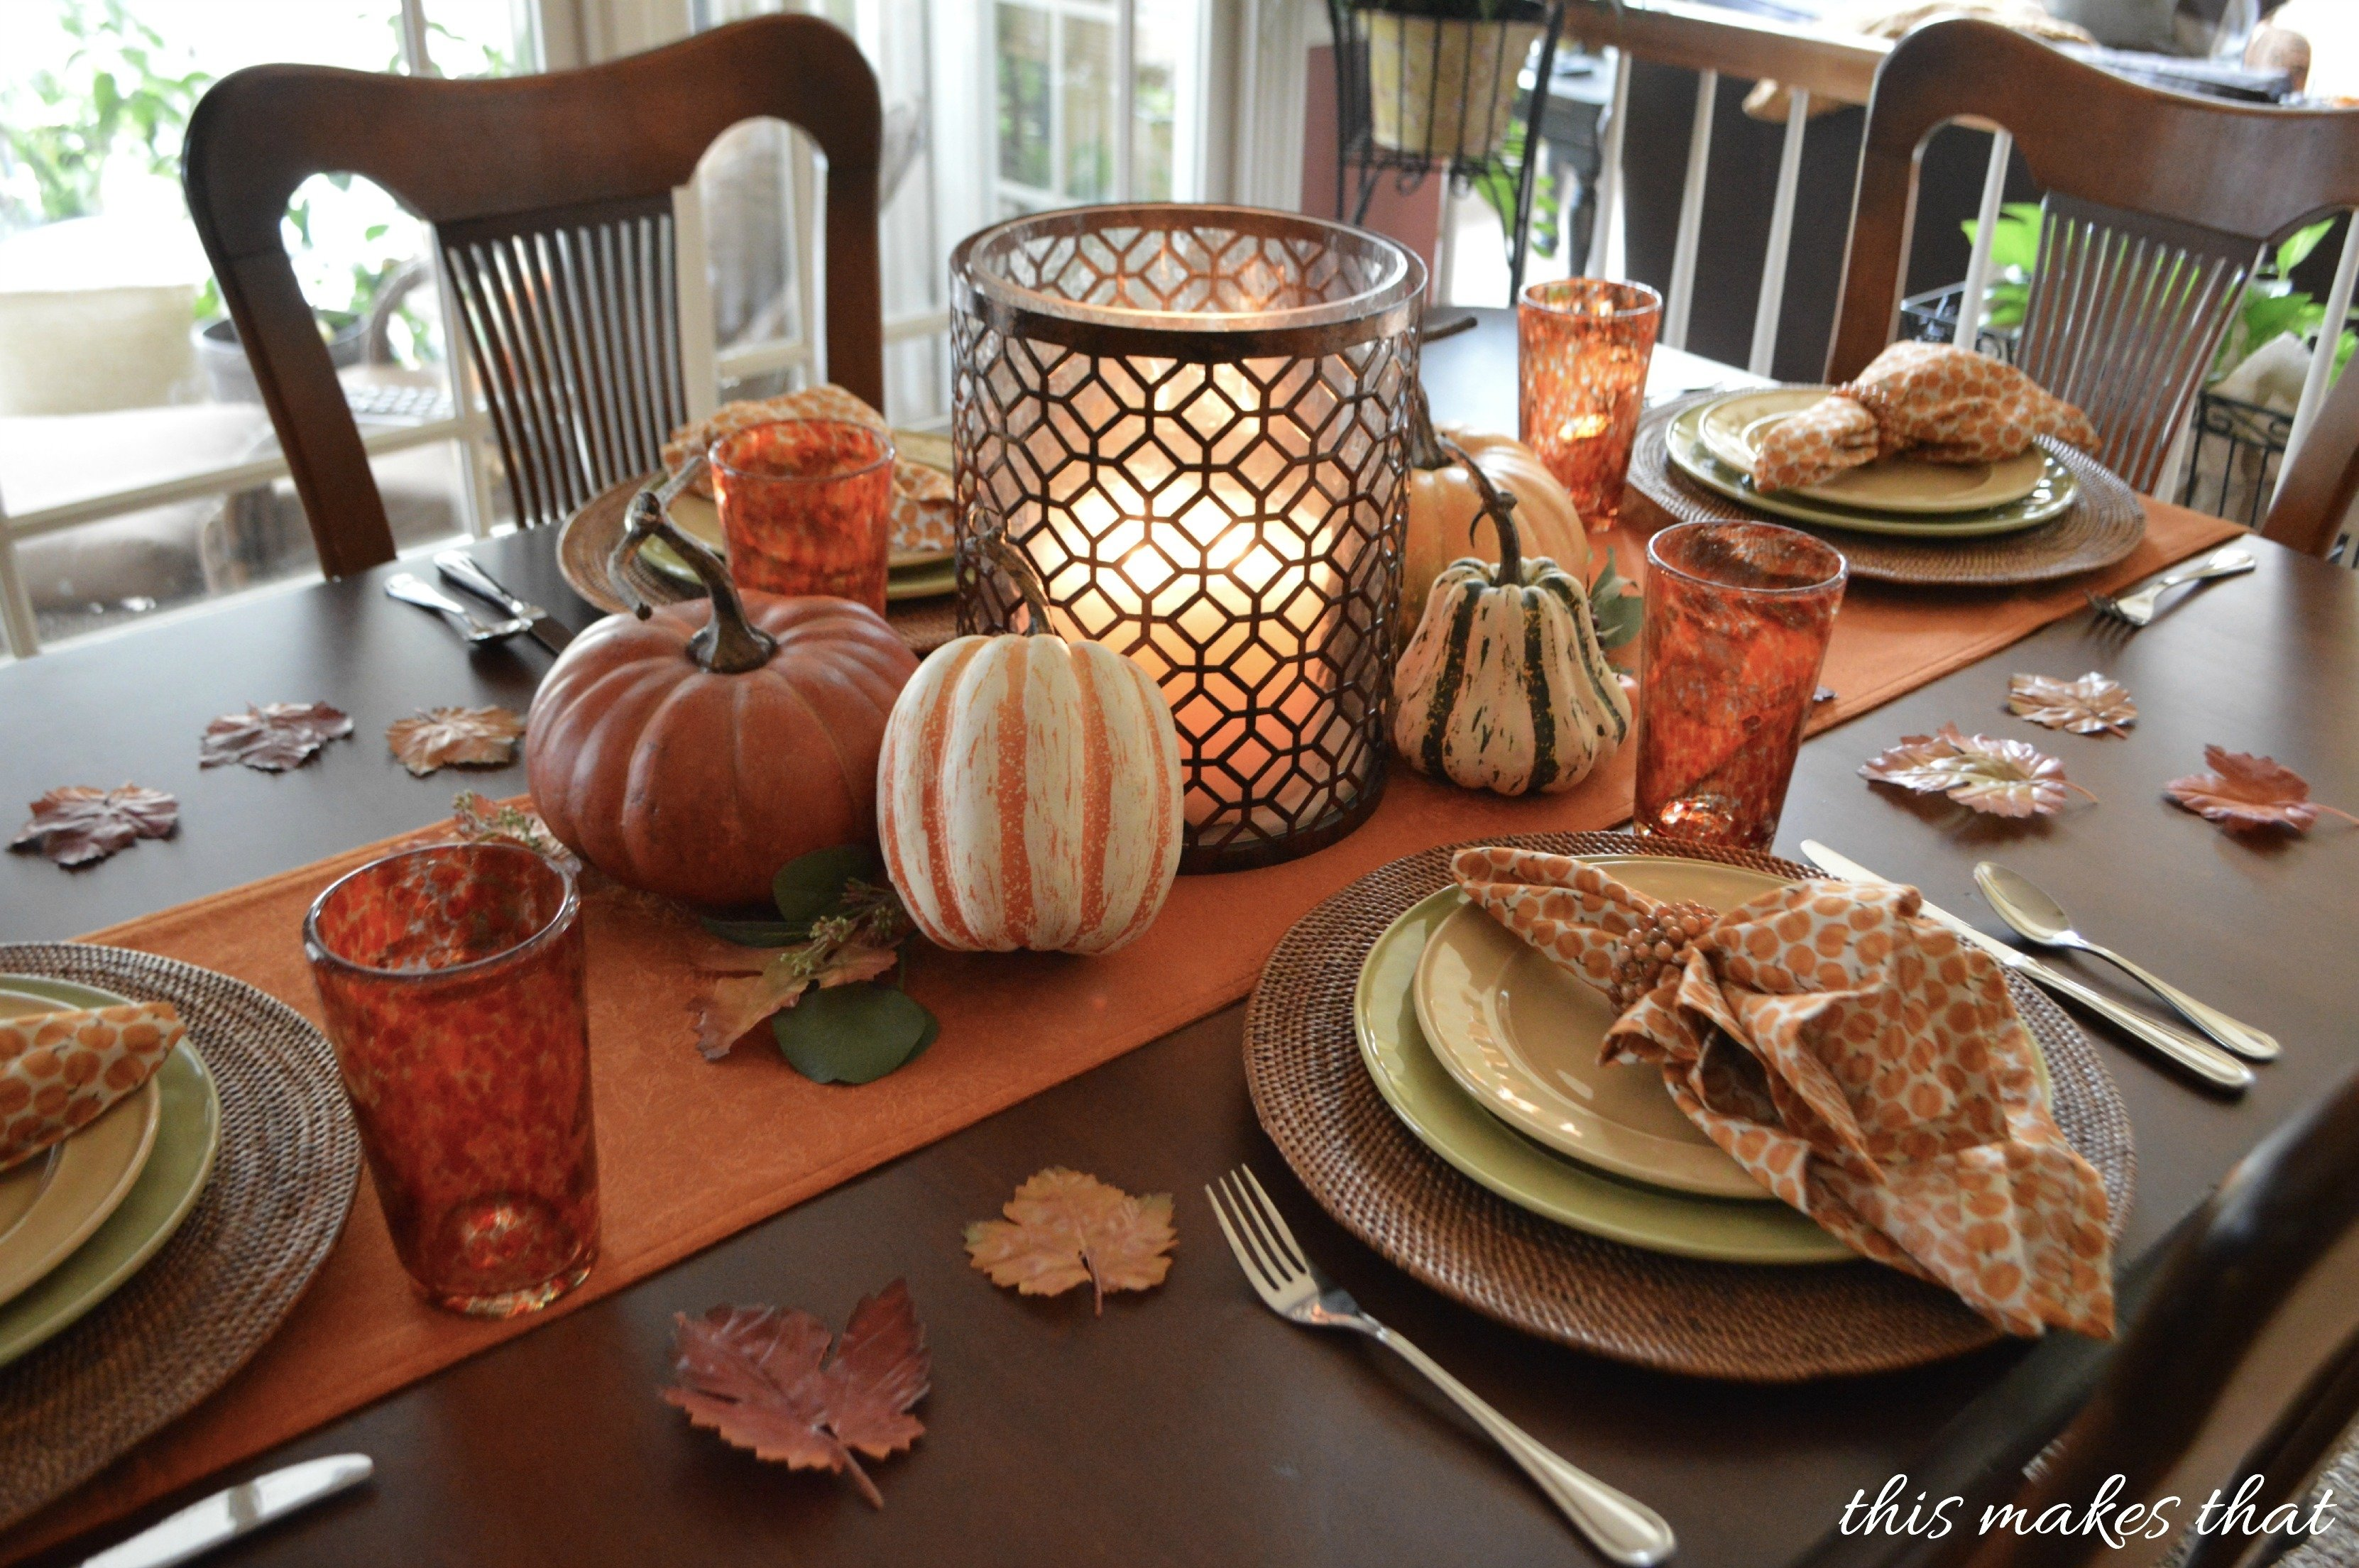 10 Attractive Table Setting Ideas For Thanksgiving thanksgiving table setting ideas this makes that 1 2021